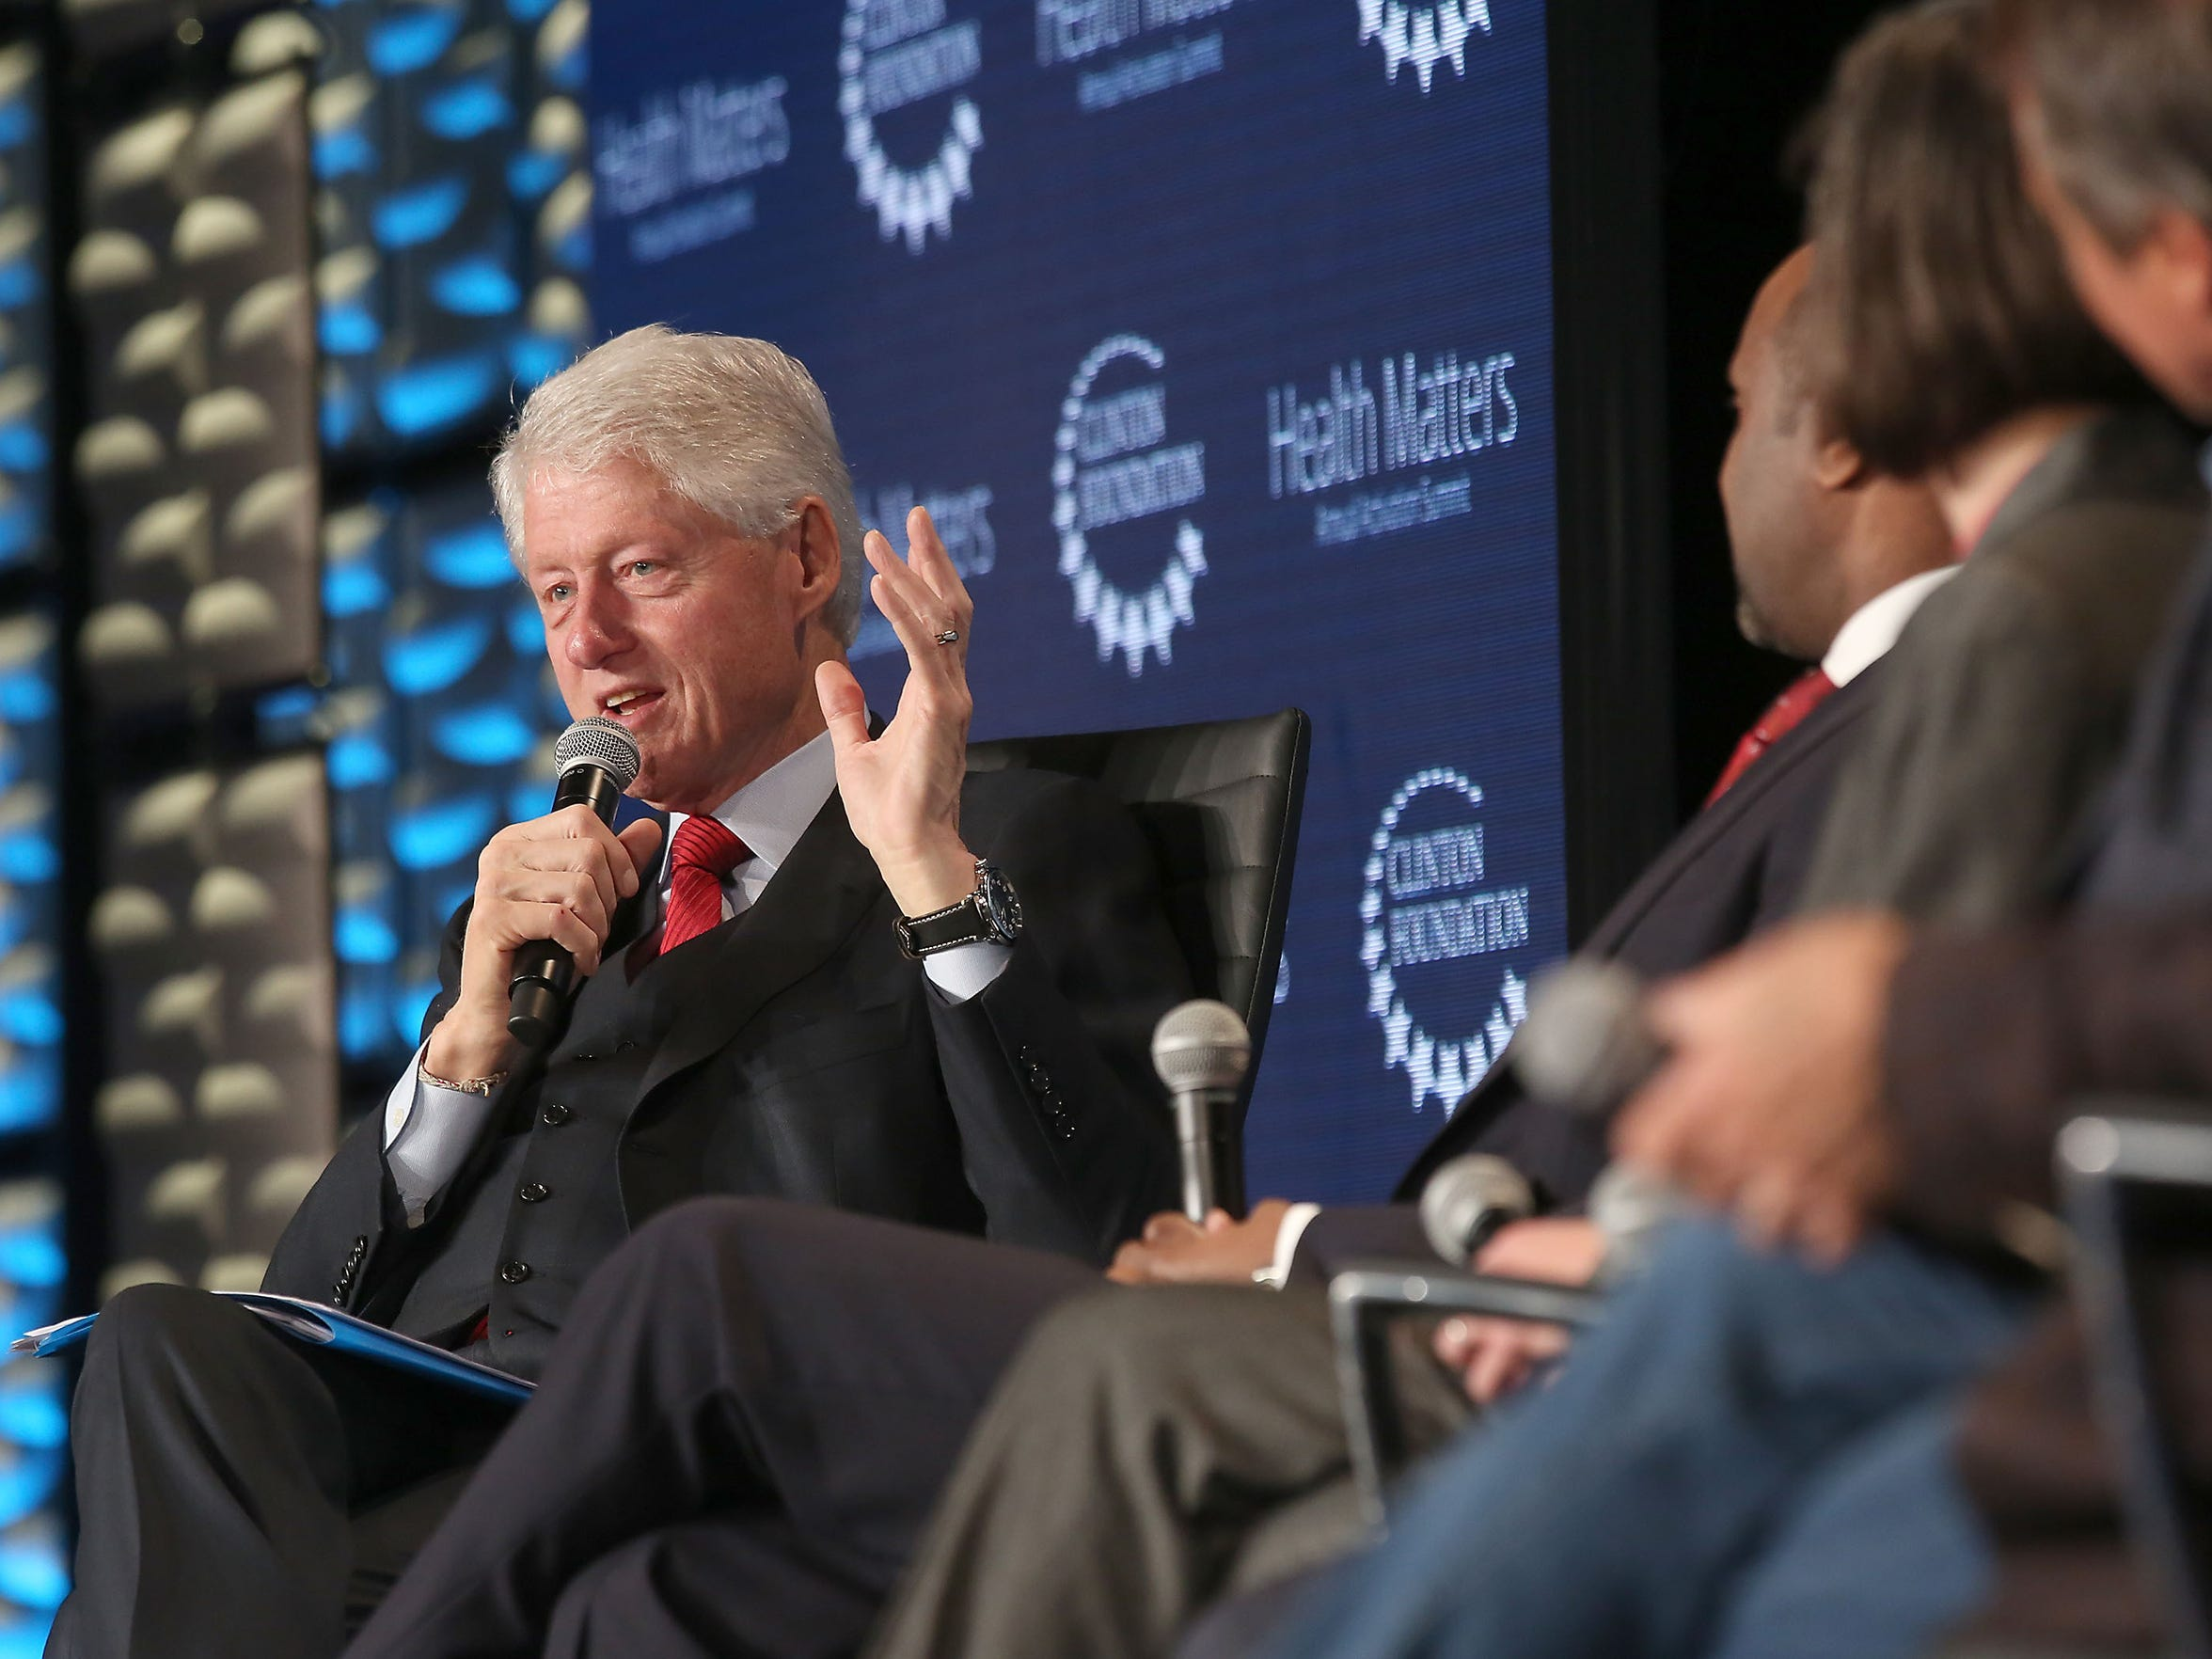 President Bill Clinton speaks during a panel discussion